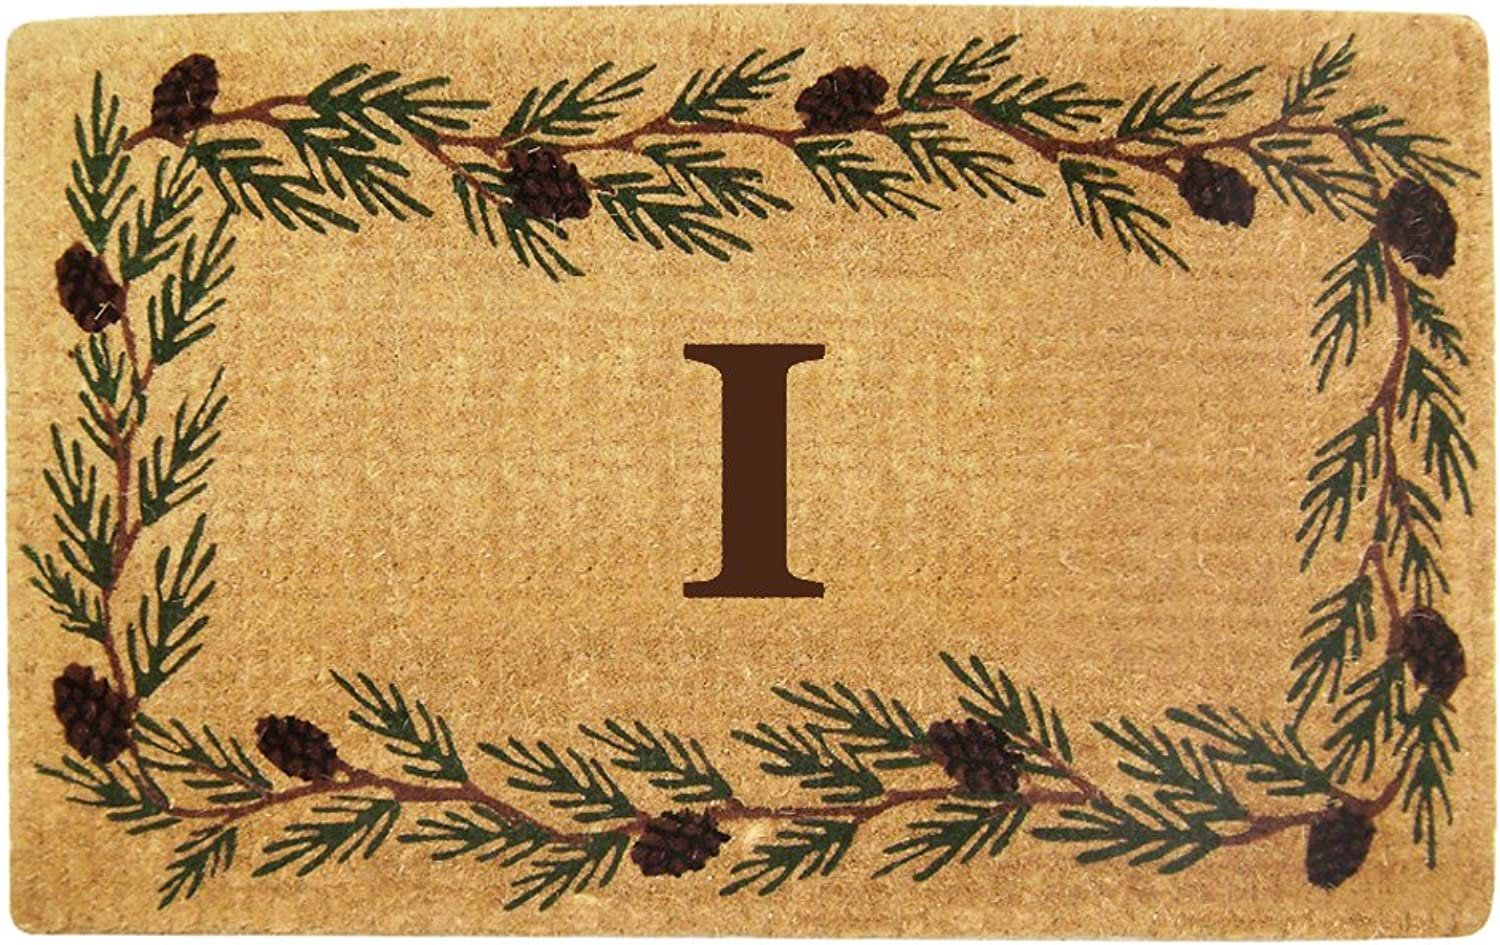 Nedia Home Heavy Duty Coco Mat with Evergreen Border, 22 by 36-Inch, Monogrammed I